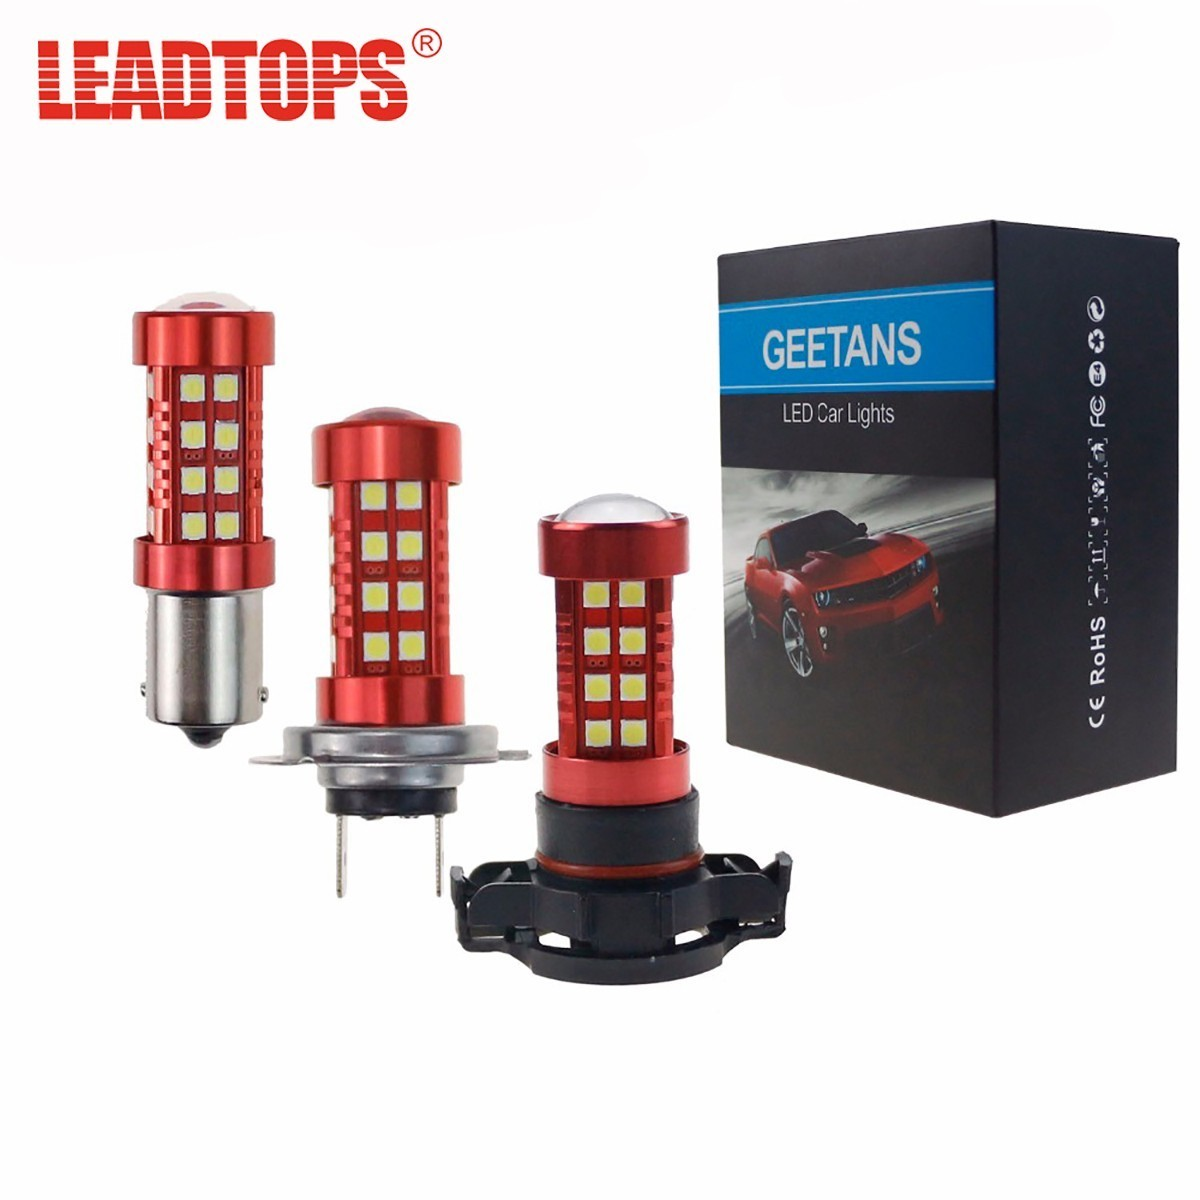 LEADTOPS Car Light Assembly LED H11 DRL Fog Lights LED 9005 9006 H10 H1 H4 H7 1156 H11 Lamps 6000k Super Bright White Bulb CJ tcart 2x 9005 hb3 9006 hb4 dual color car led headlight white yellow headlamp bulbs fog lamps for plips chip 36w auto led light